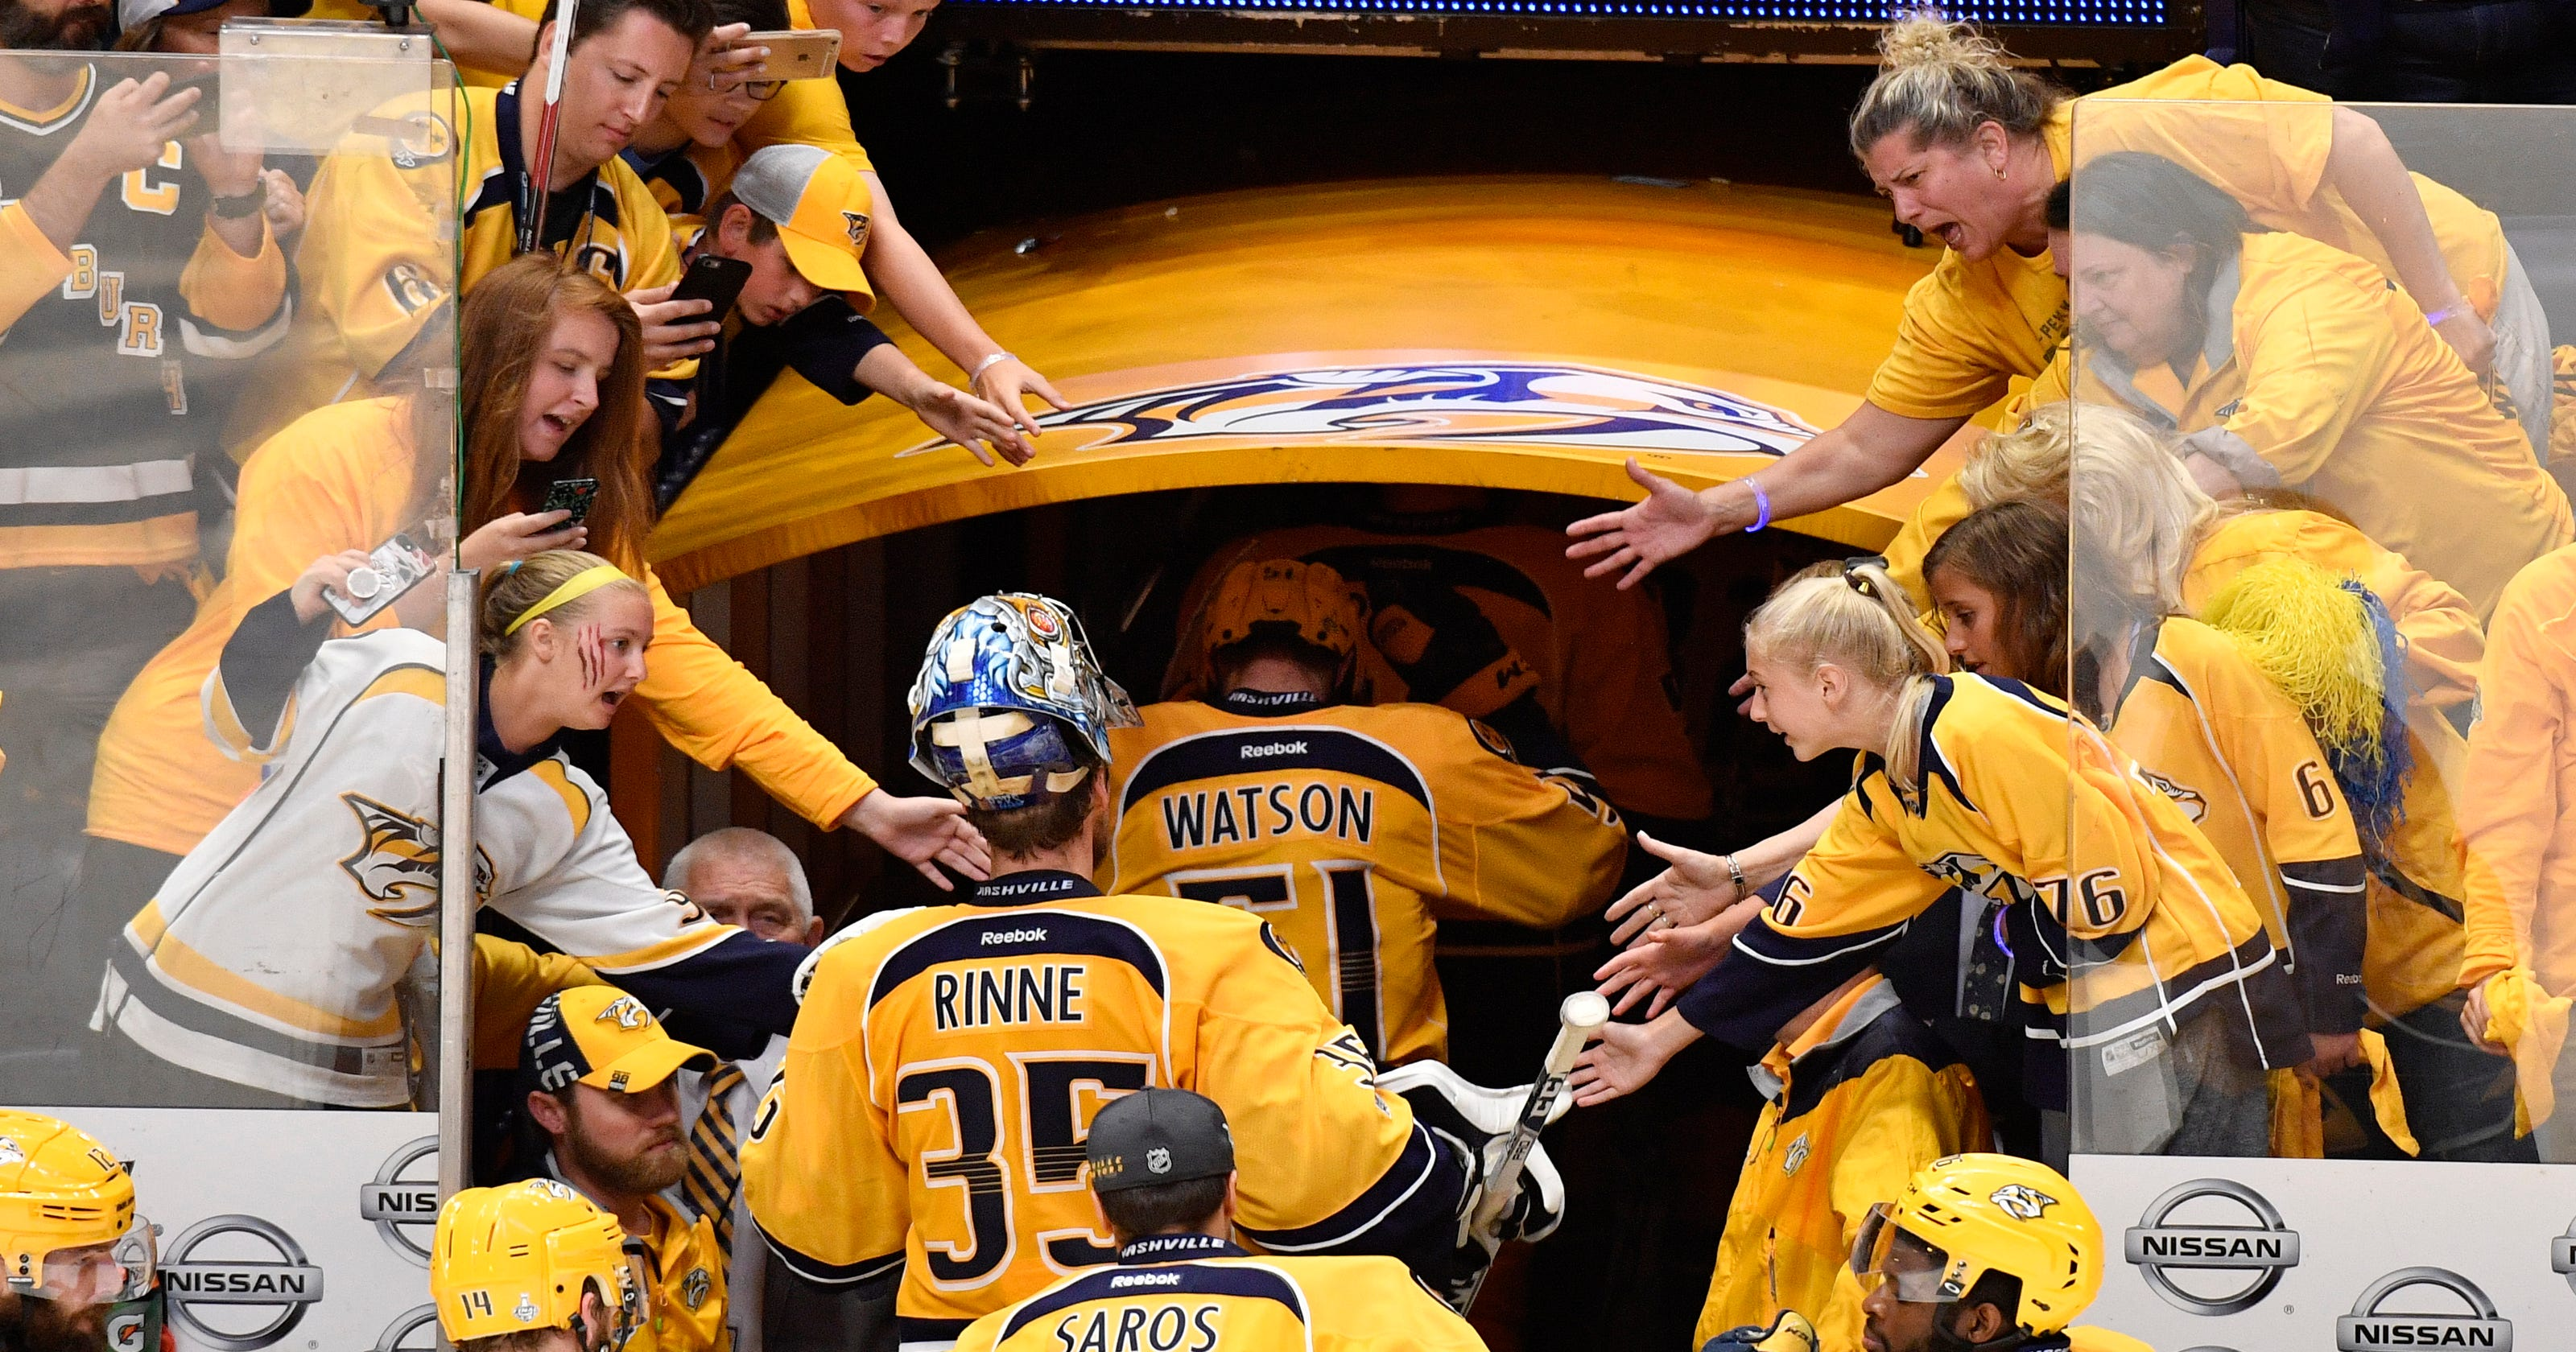 903a2ee62 Loss in Stanley Cup Final still stings Predators